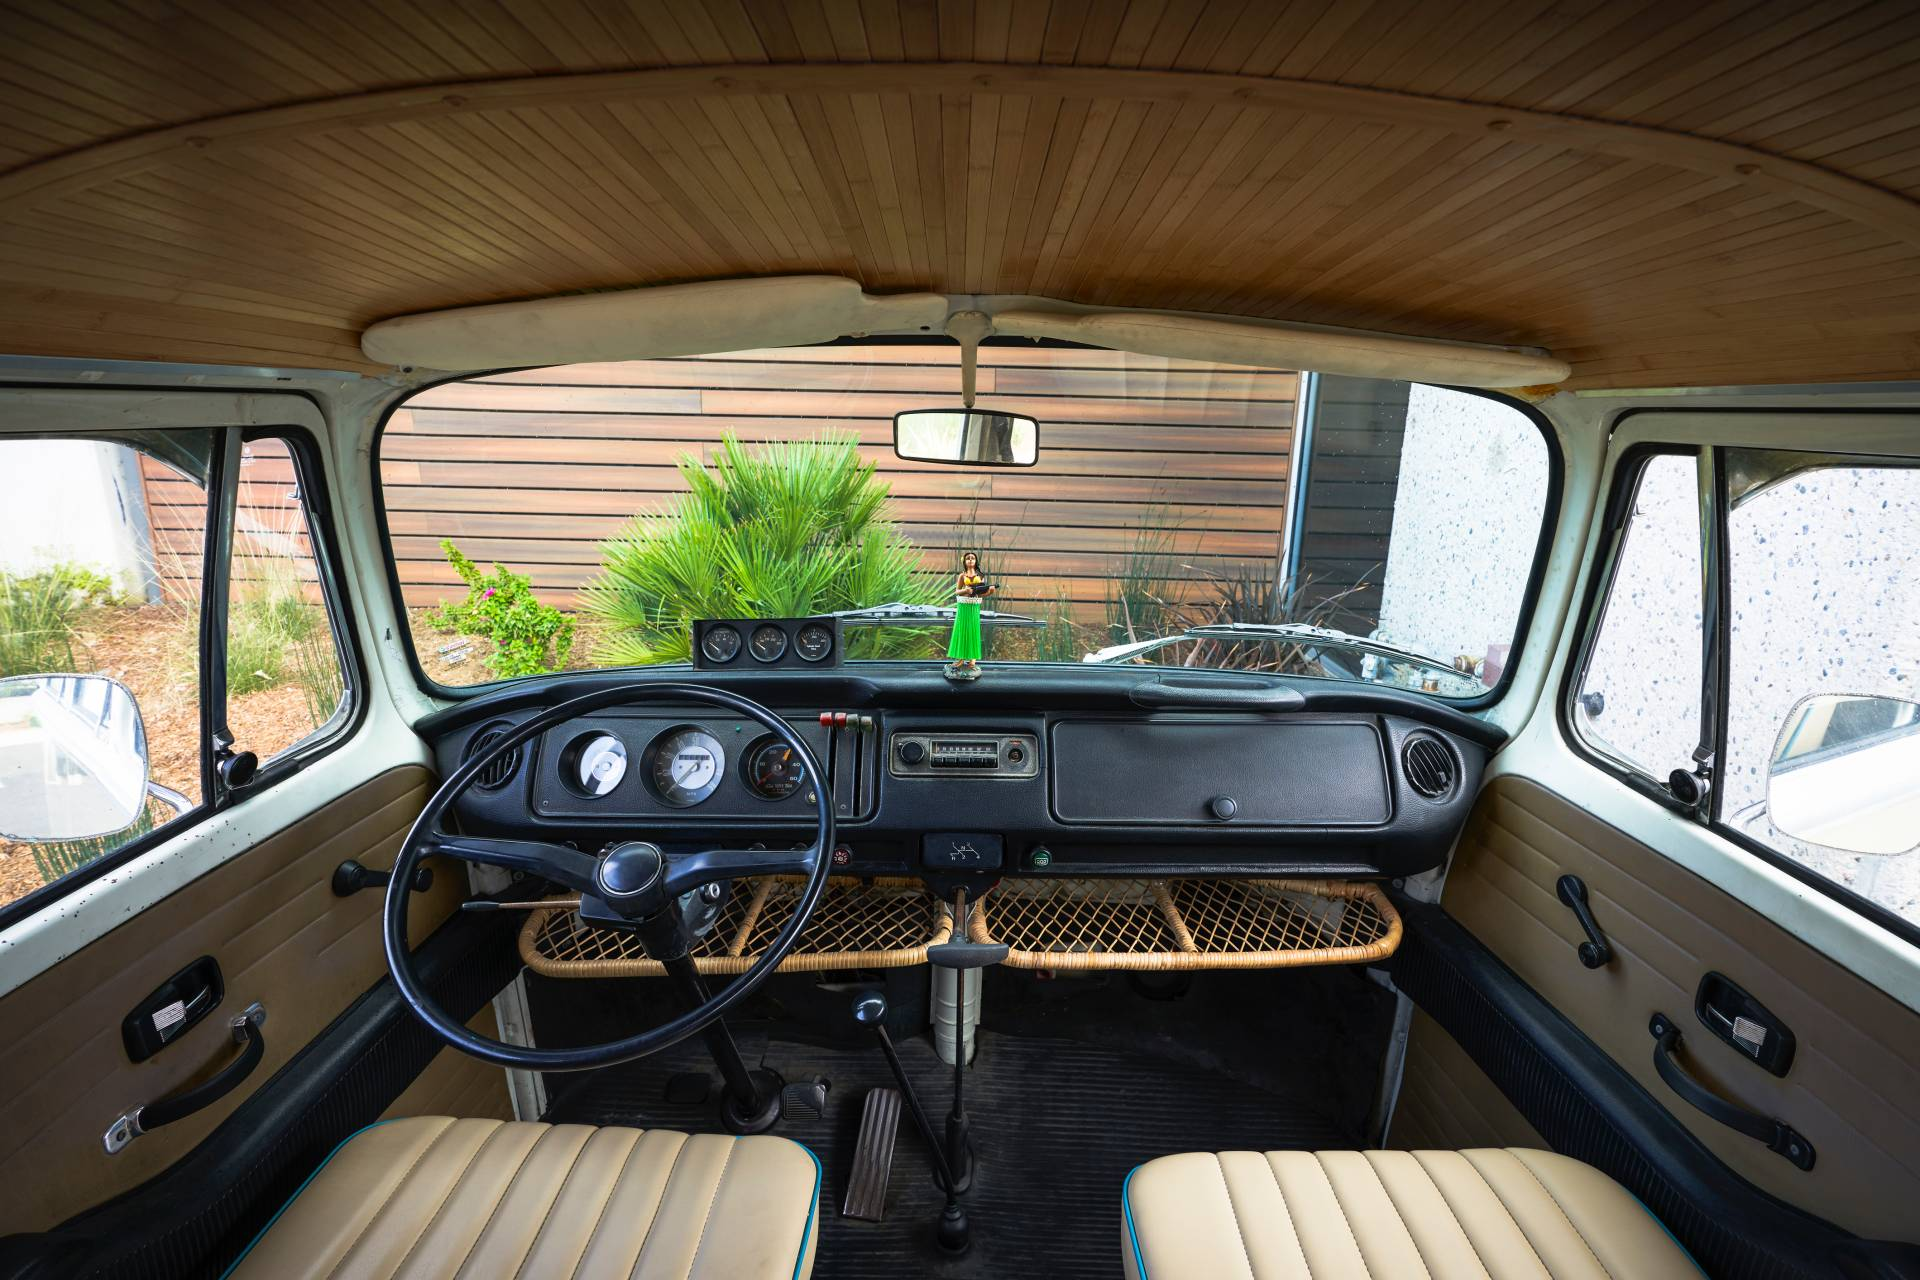 Volkswagen-Type-2-1972-with-e-Golf-engine-25